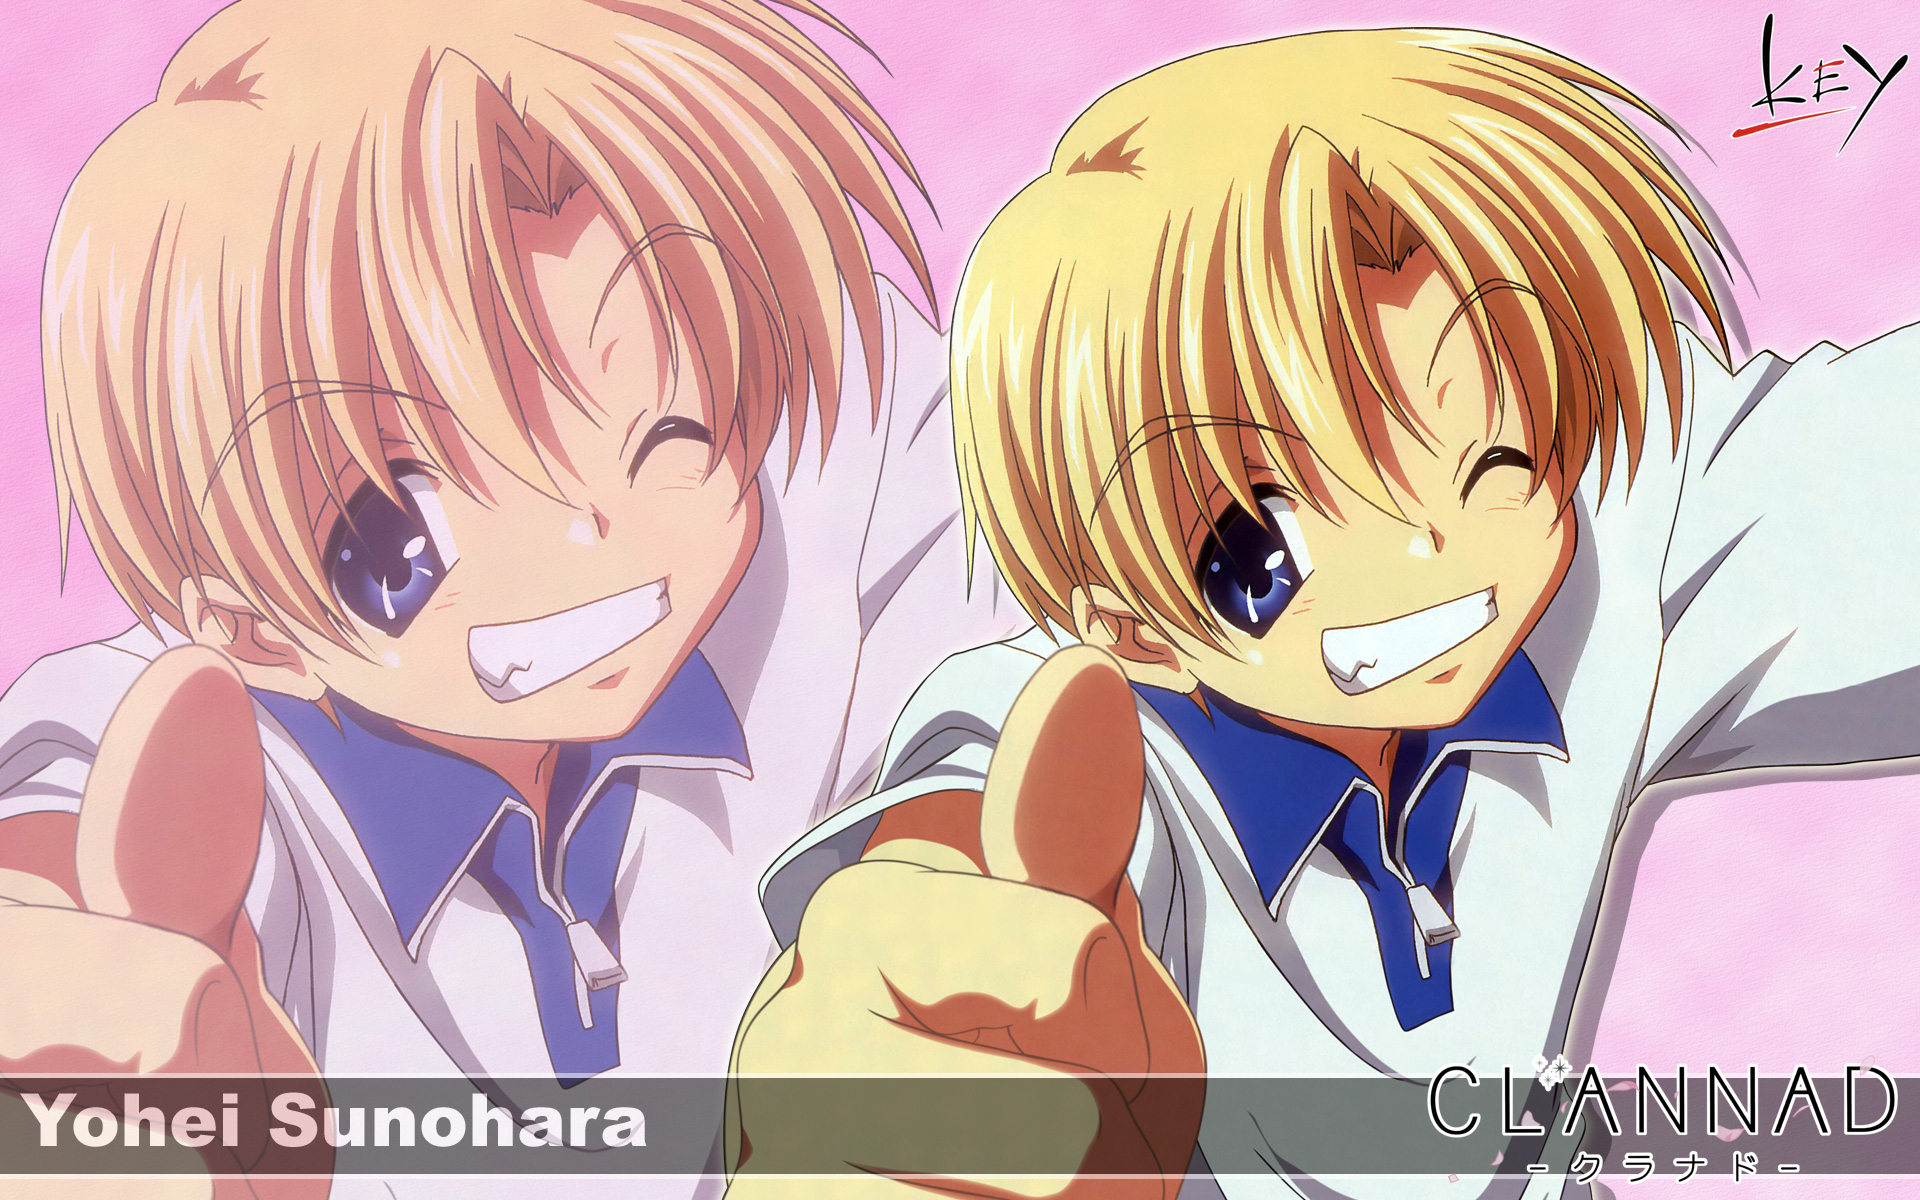 all_male blonde_hair clannad key logo male sunohara_youhei zoom_layer